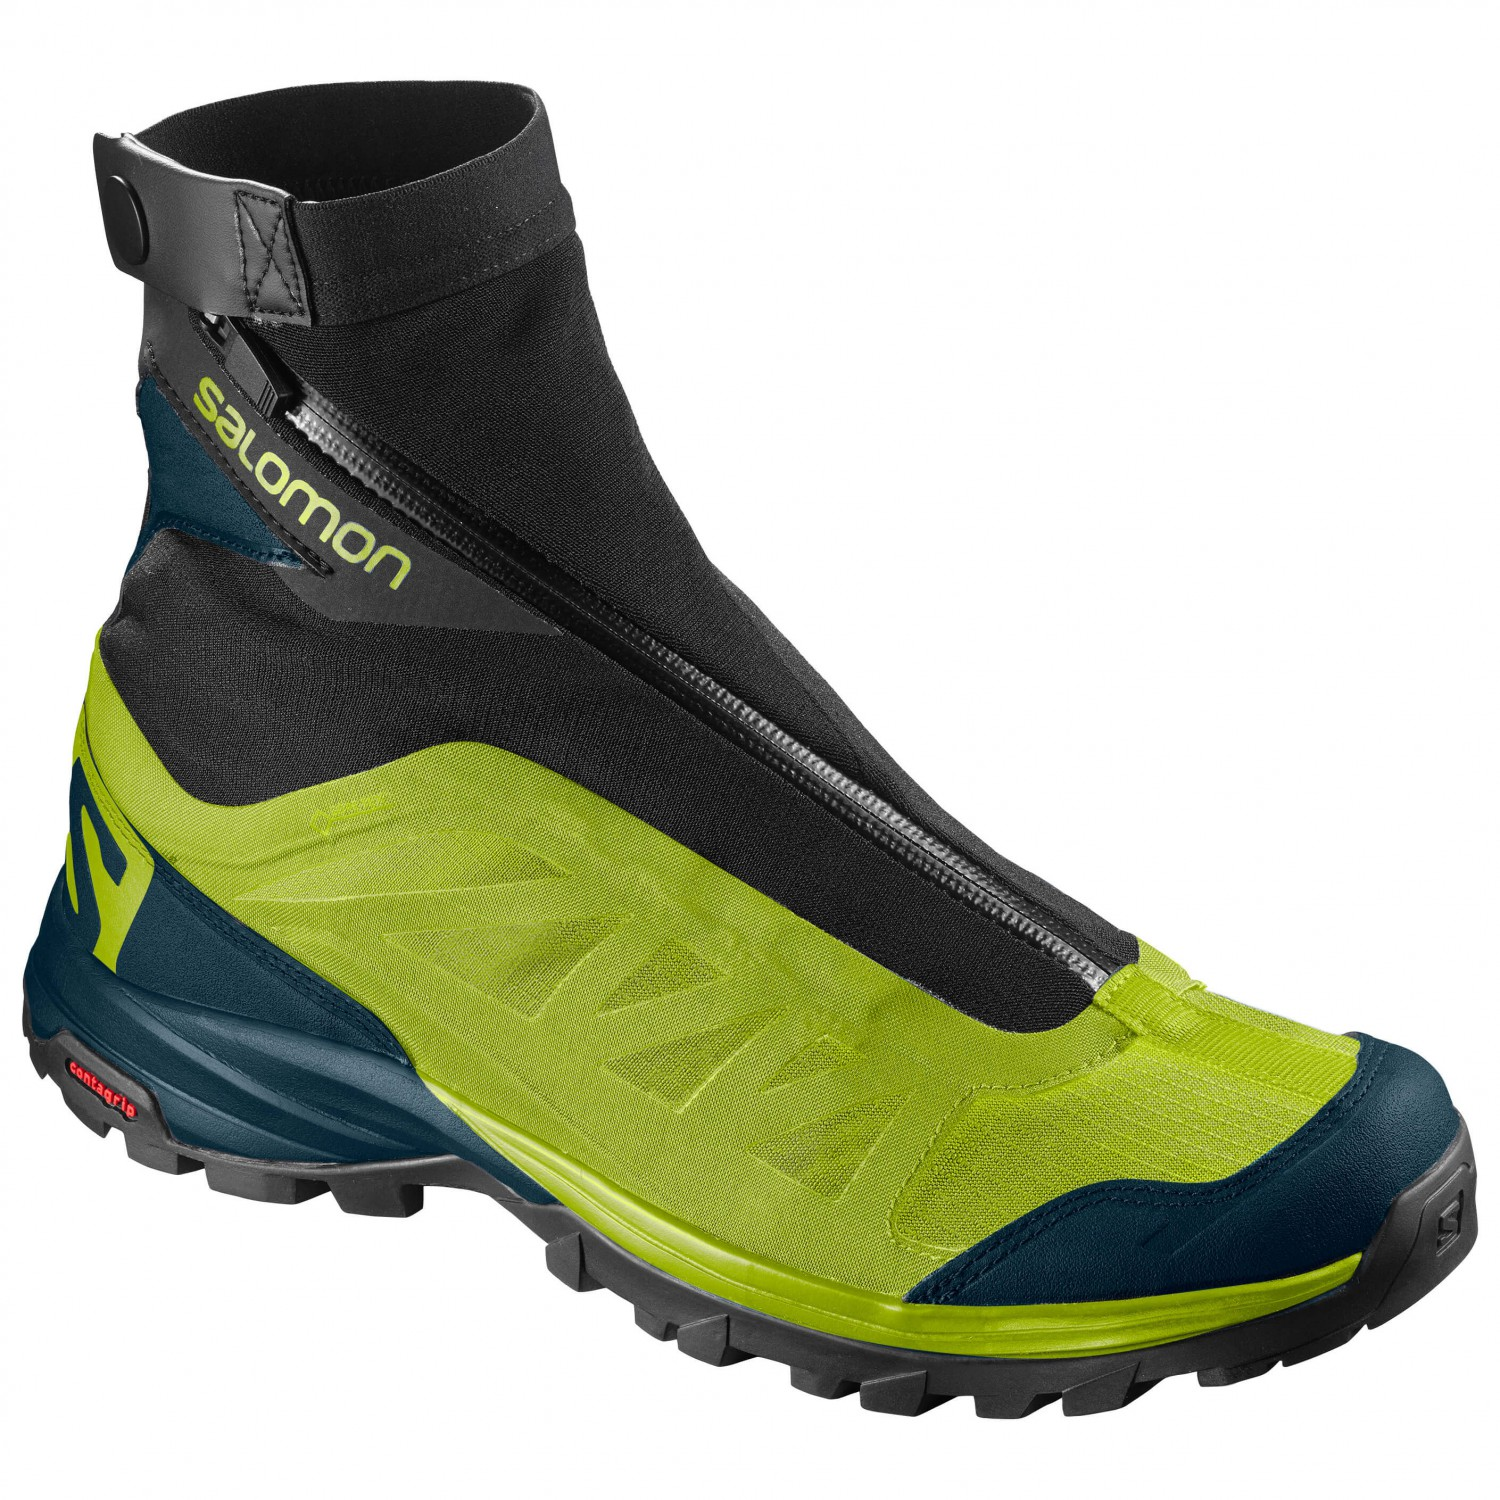 Salomon - Outpath Pro GTX - Multisportschuhe Lime Punch / Reflecting Pond / Black